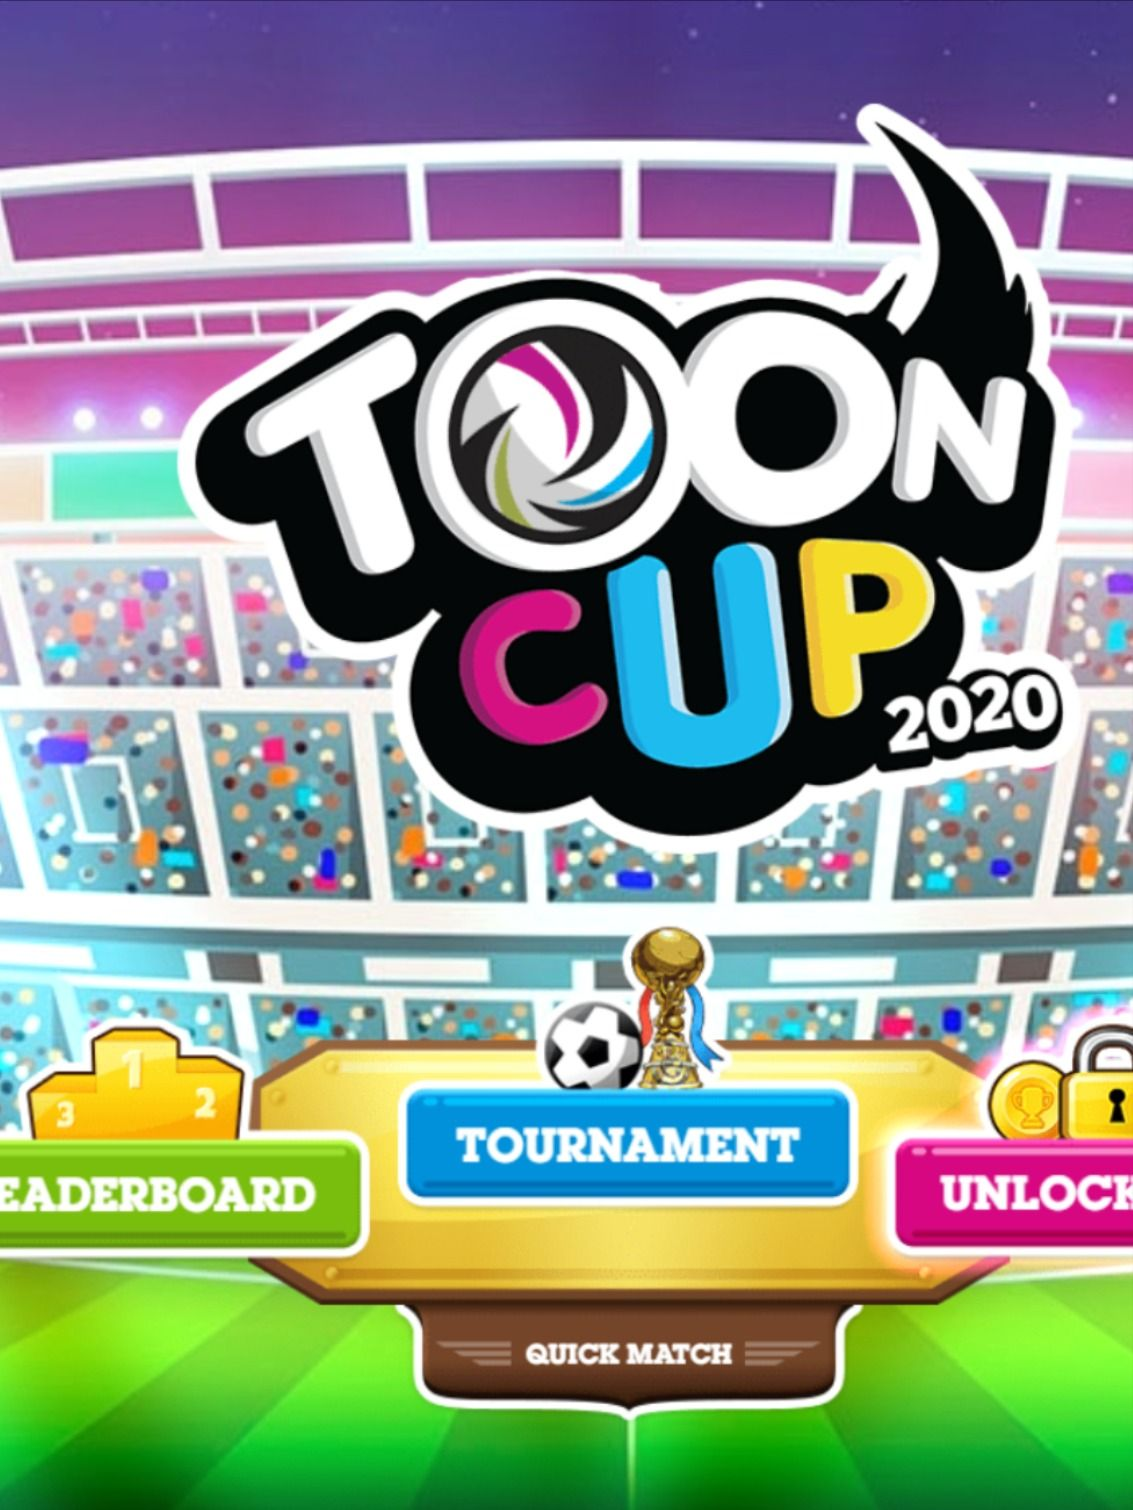 Toon Cup 2020 Html5 Football Game In 2020 Toon Cup Football Games Animated Cartoon Characters